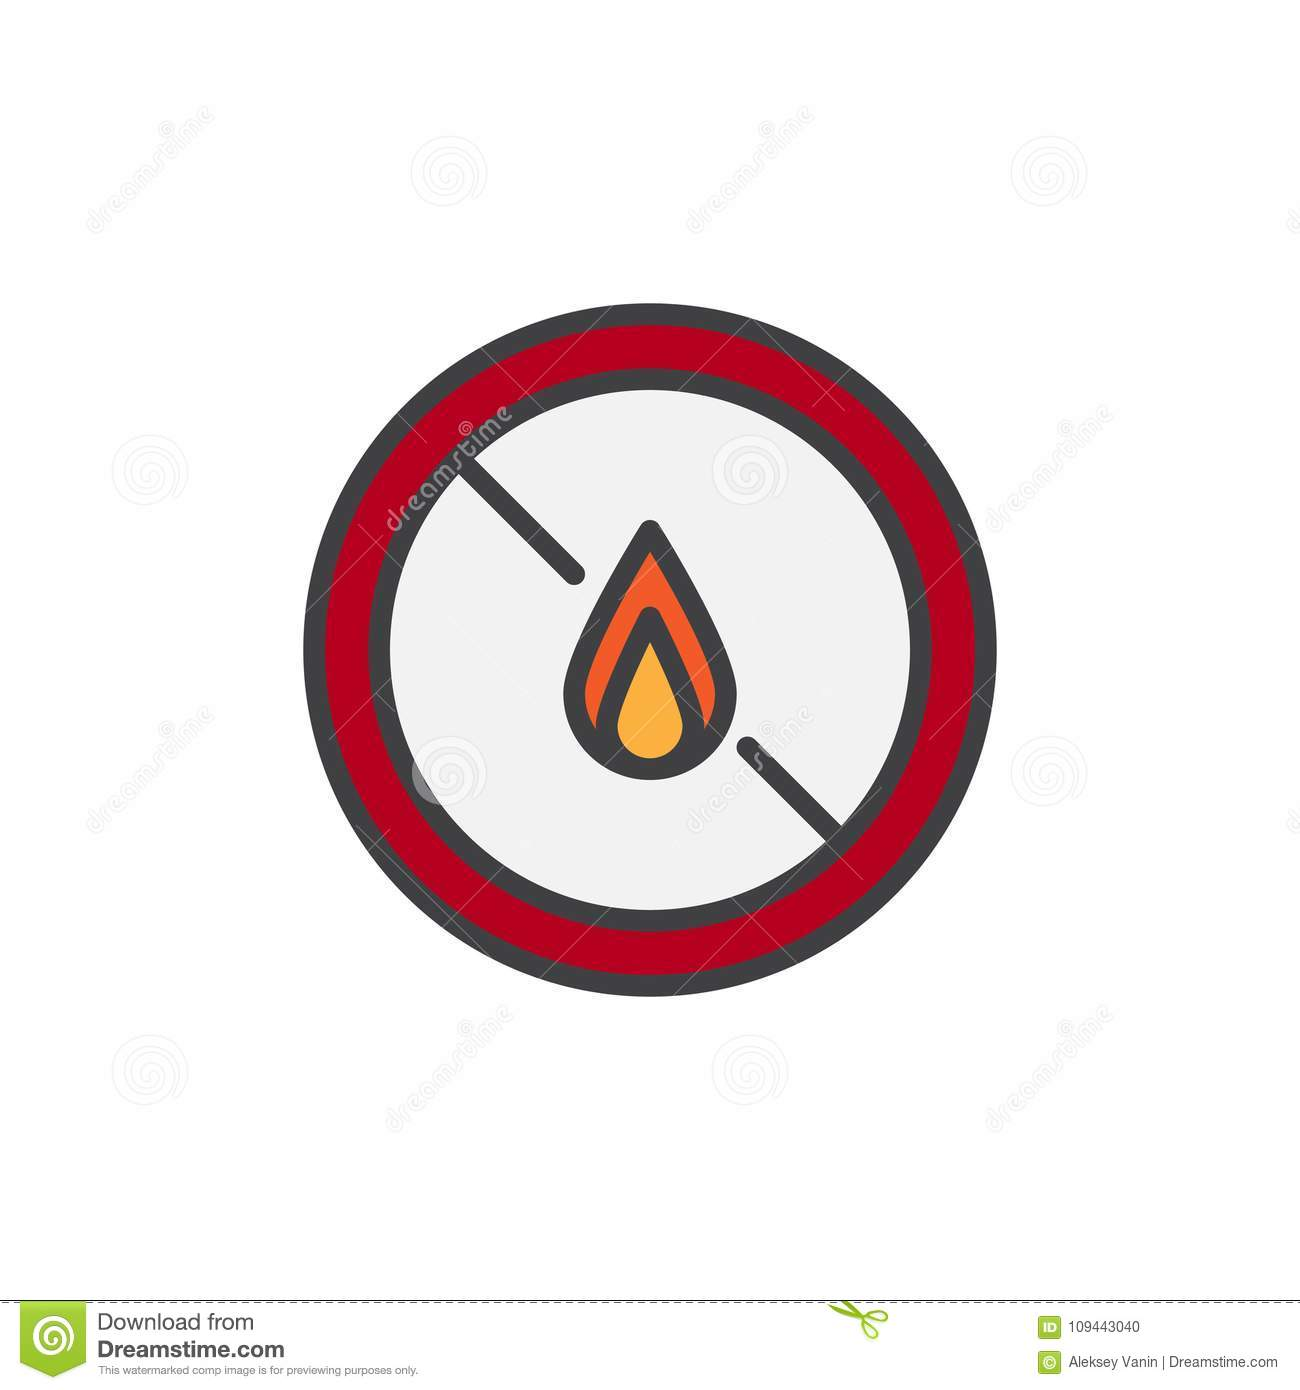 No Expose Flammable Liquids Filled Outline Icon Stock Vector